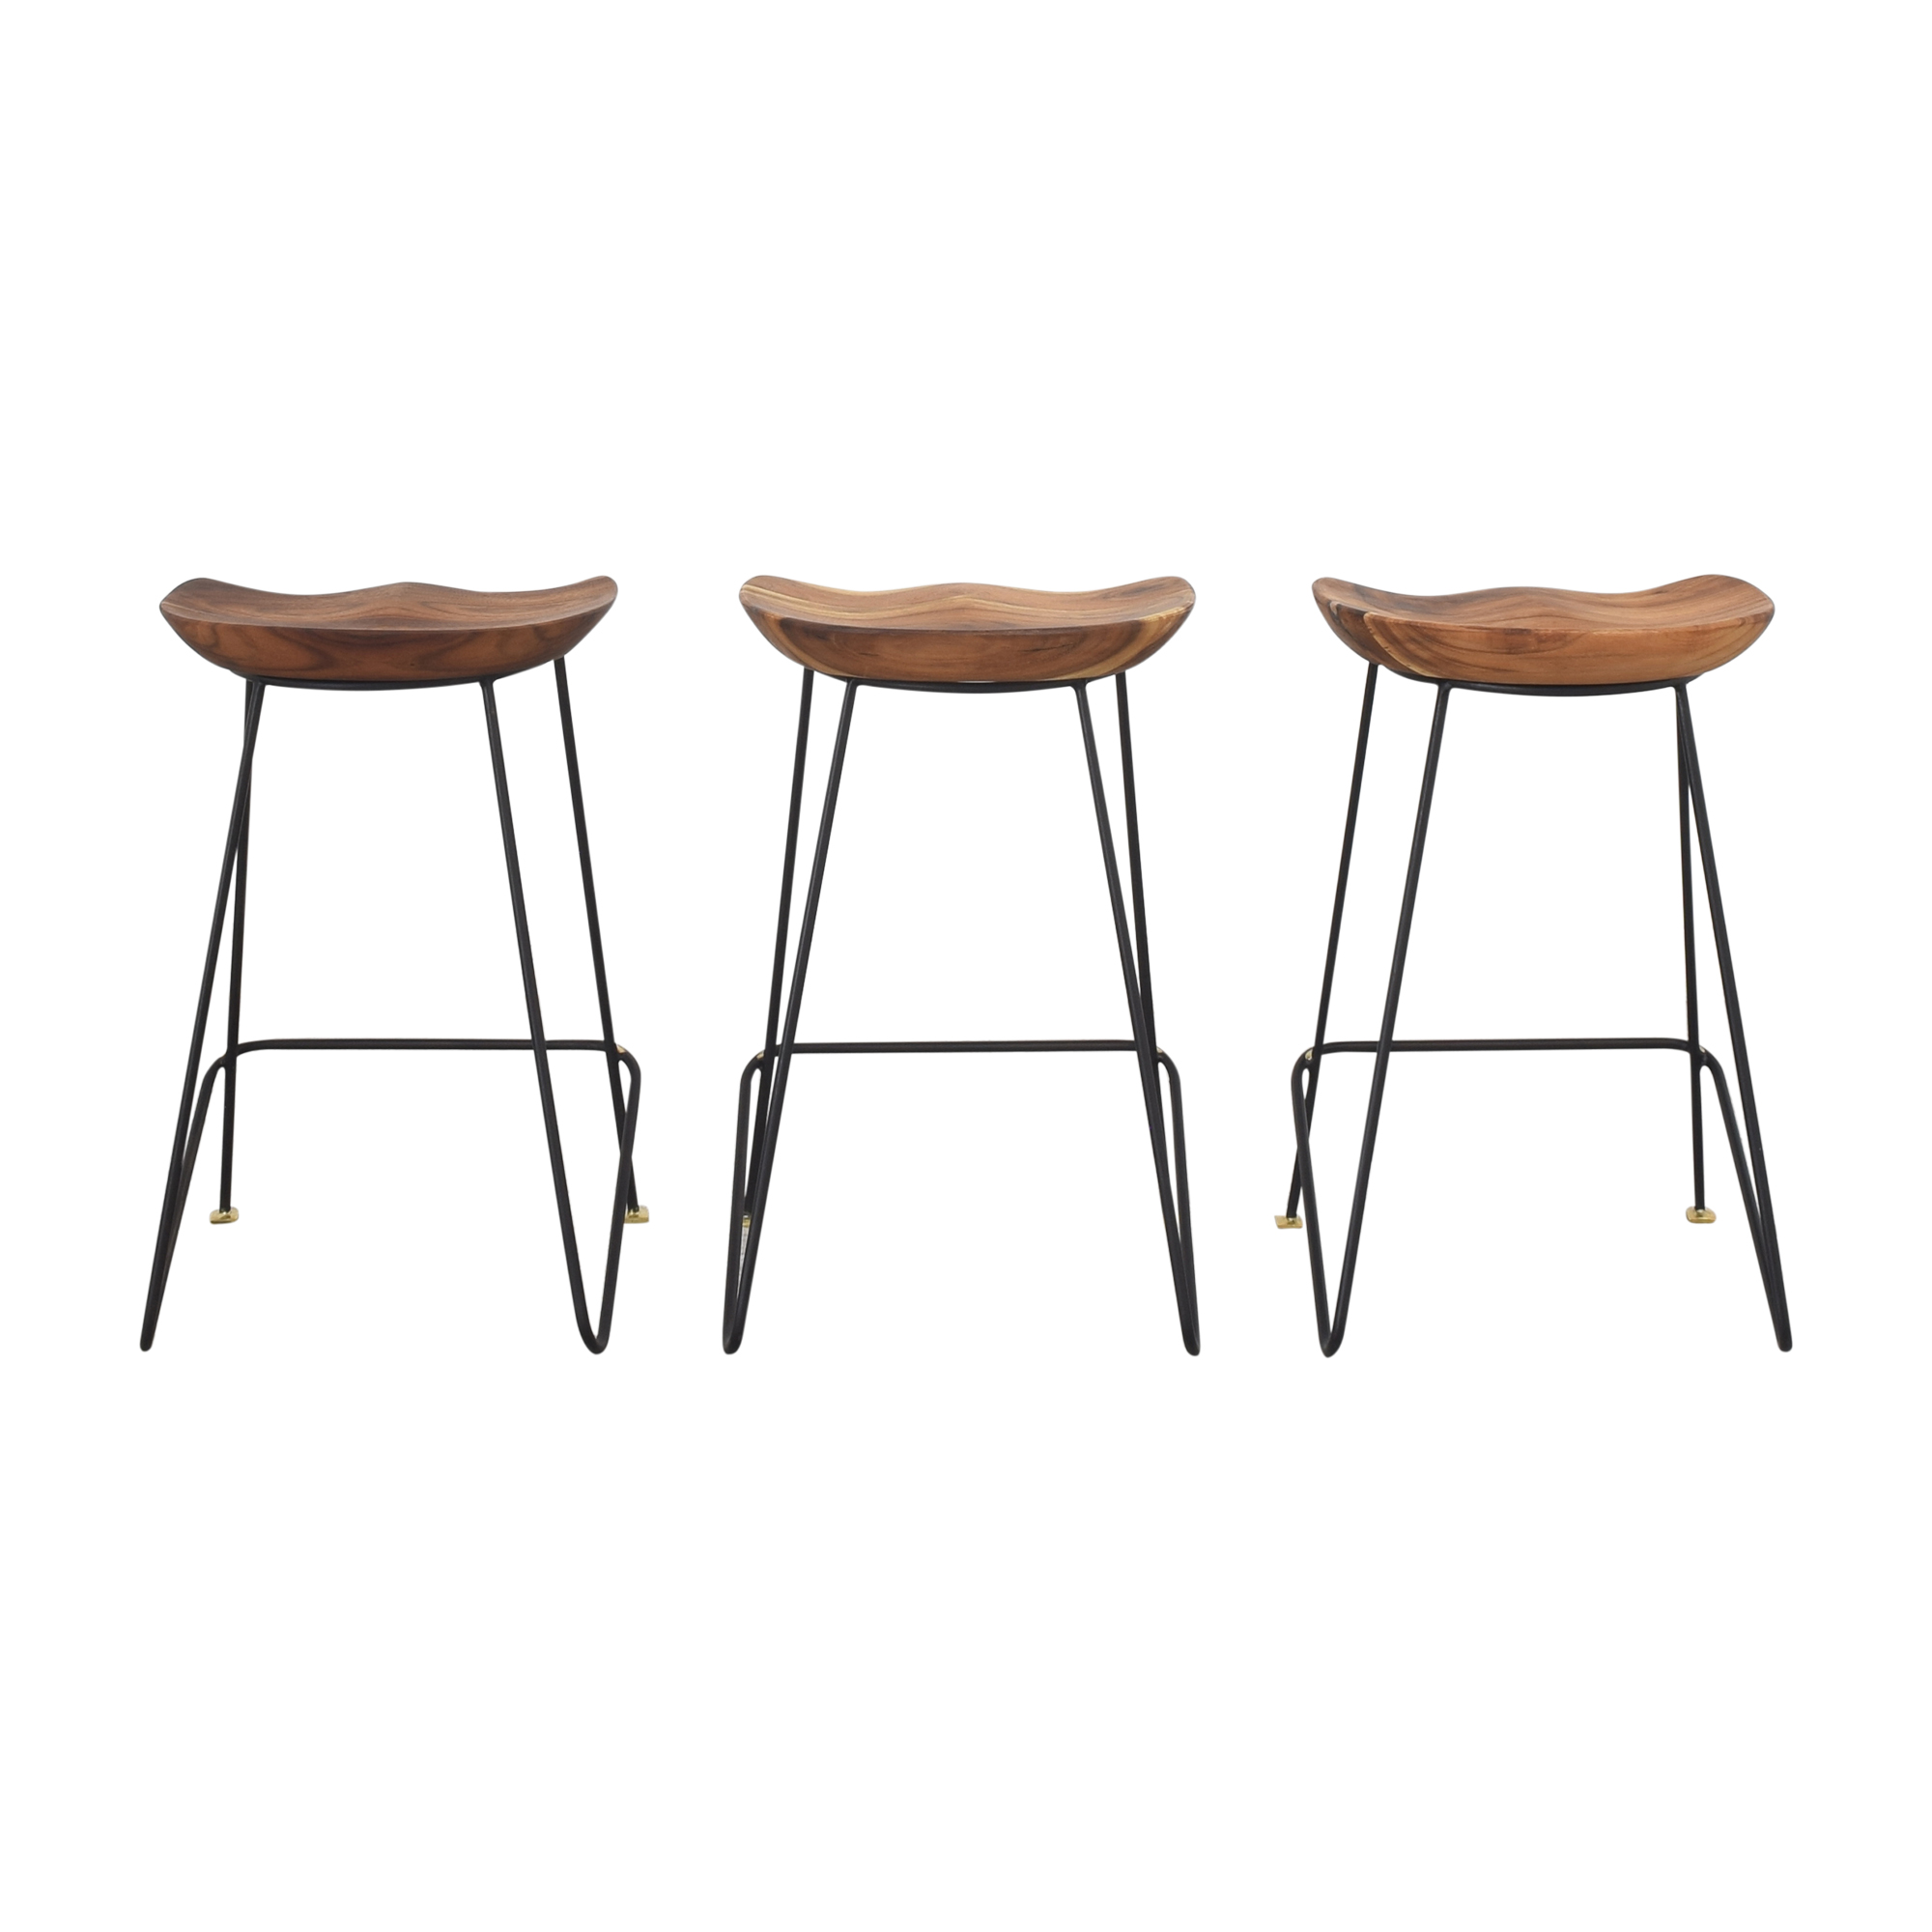 buy Organic Modernism Chicago Counter Stools Organic Modernism Stools